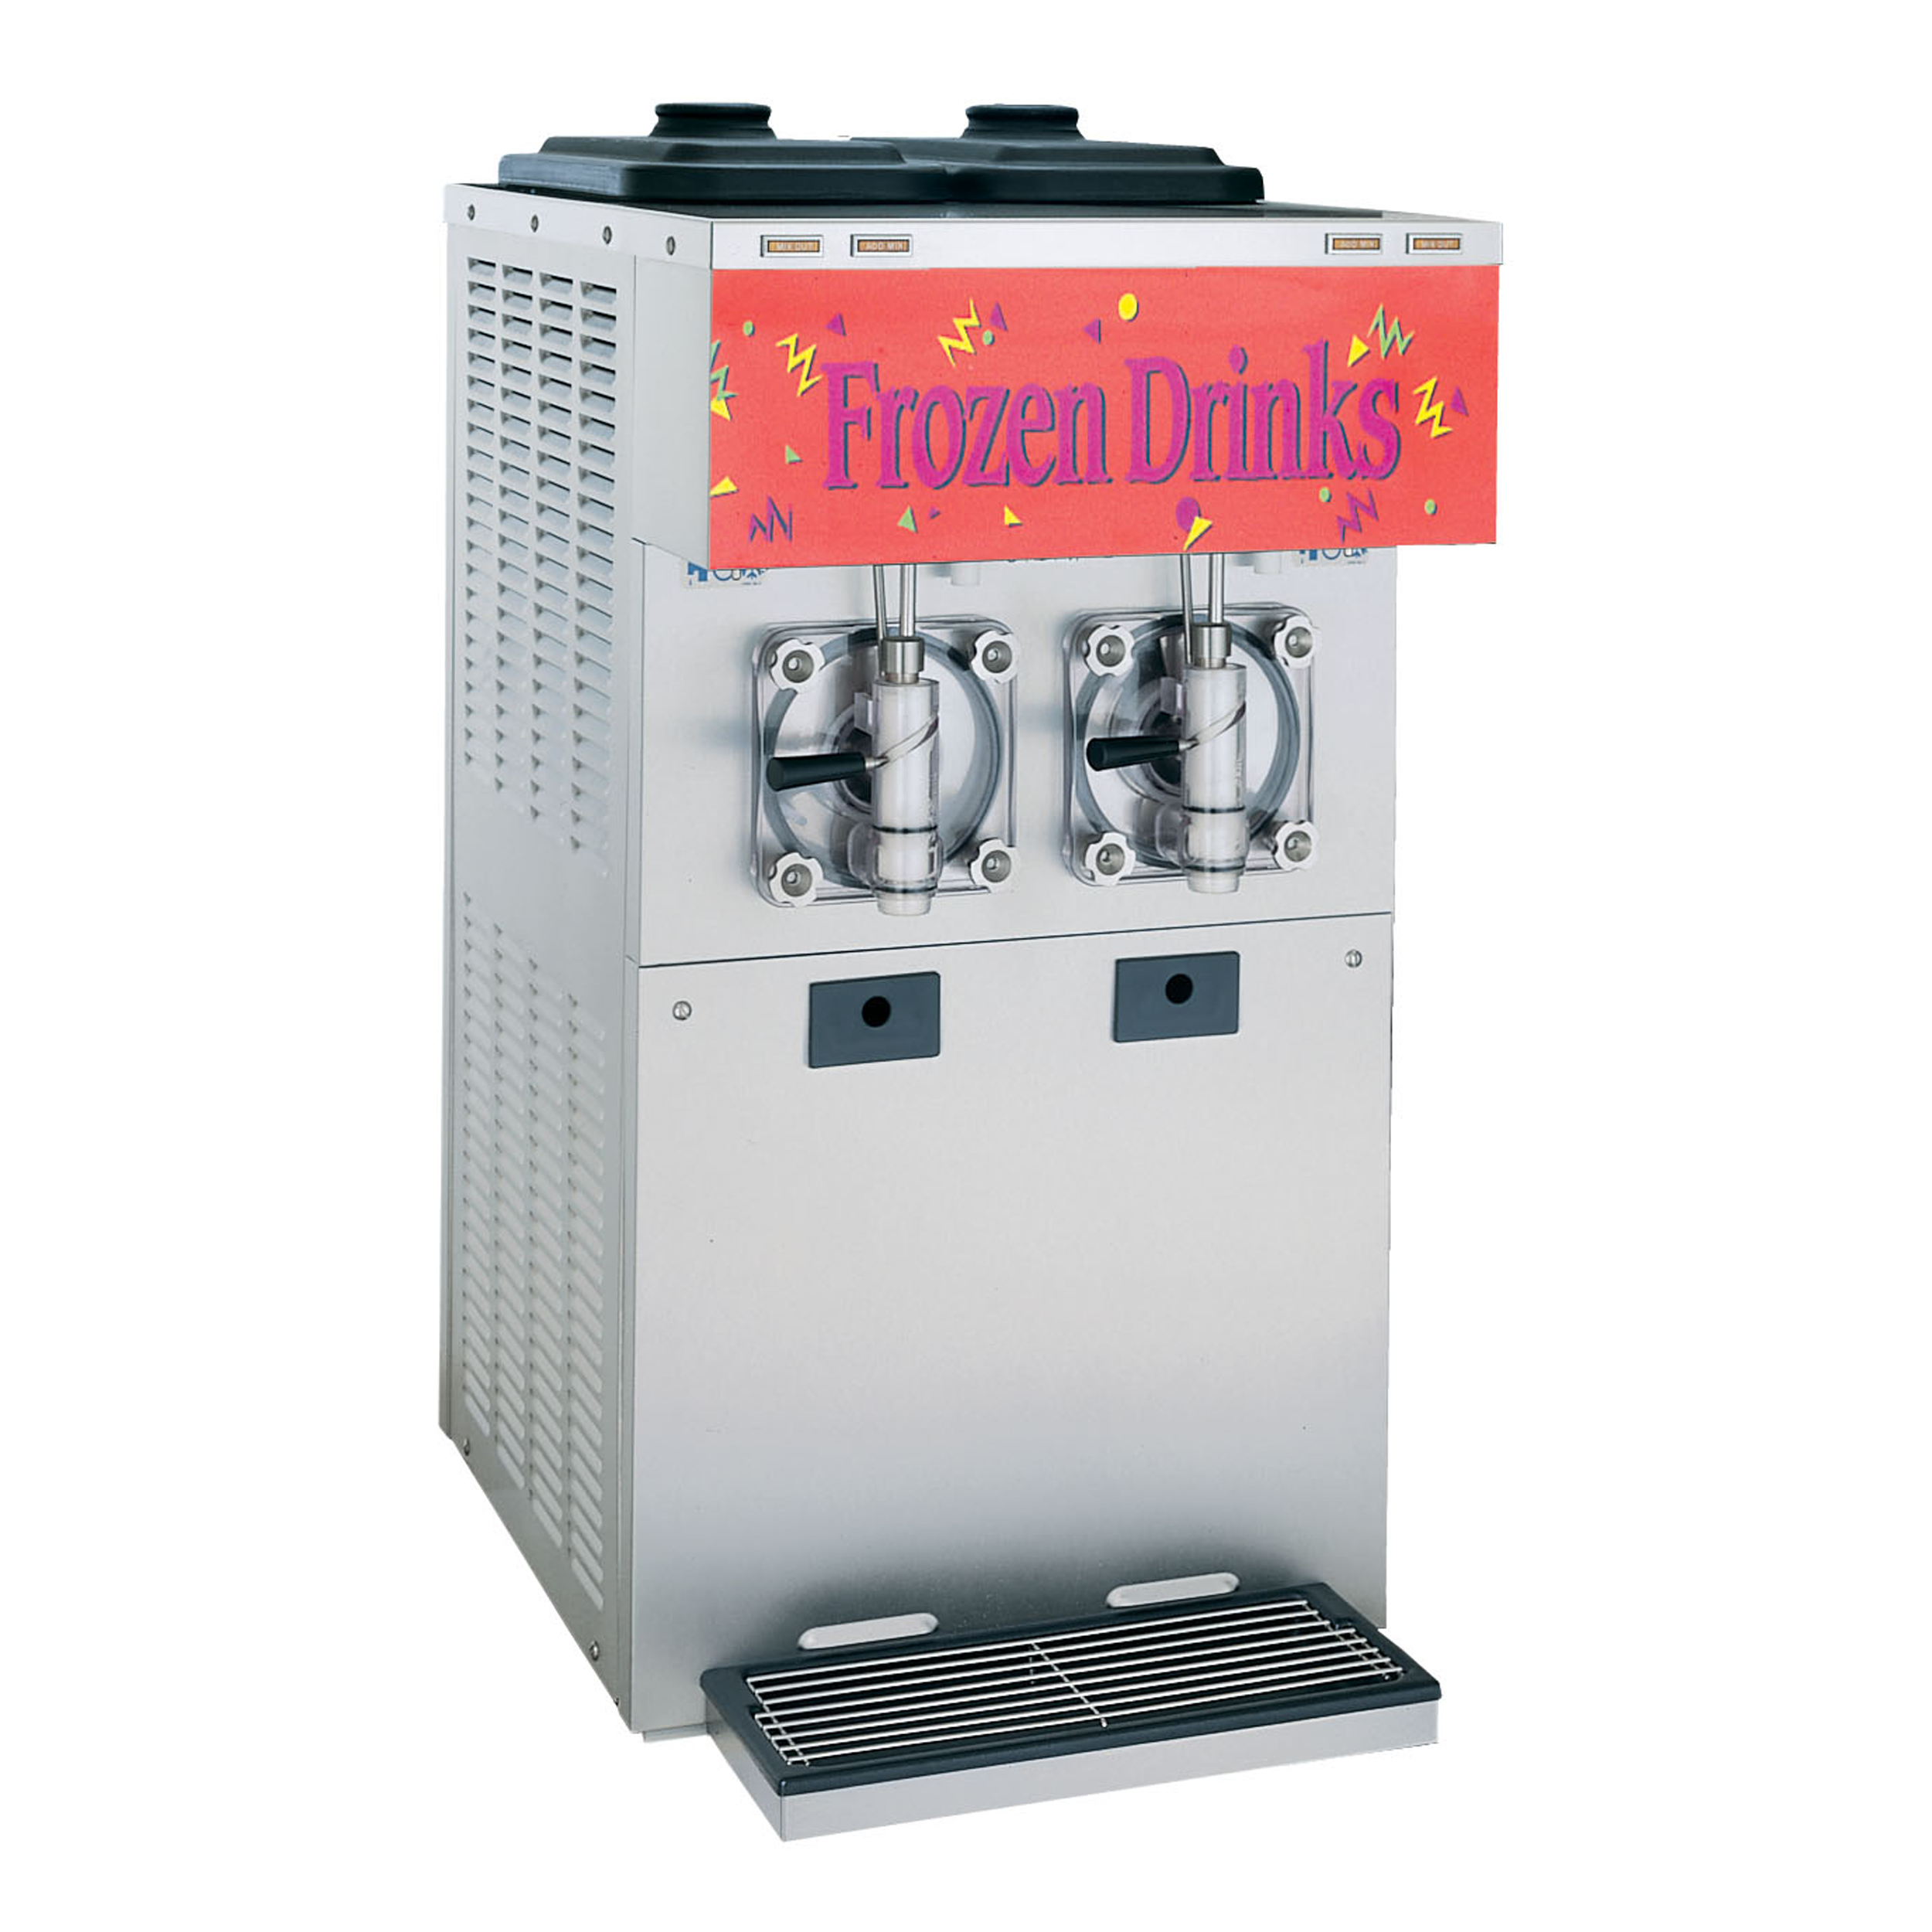 Model 432   Frozen Beverage Freezer  Vary your menu by offering shakes & smoothies or frozen cocktails, fruit juices, coffees, cappuccino and tea slush beverages, all served at the desired thickness.  KEY SPECIFICATIONS:   Finished Products : Frozen Beverage, Smoothies, Shake   Installation : Countertop   Number of Flavors : 2   Freezing Cylinder QTY : 2   Freezing Cylinder Size (qt/l) : 4/3.8